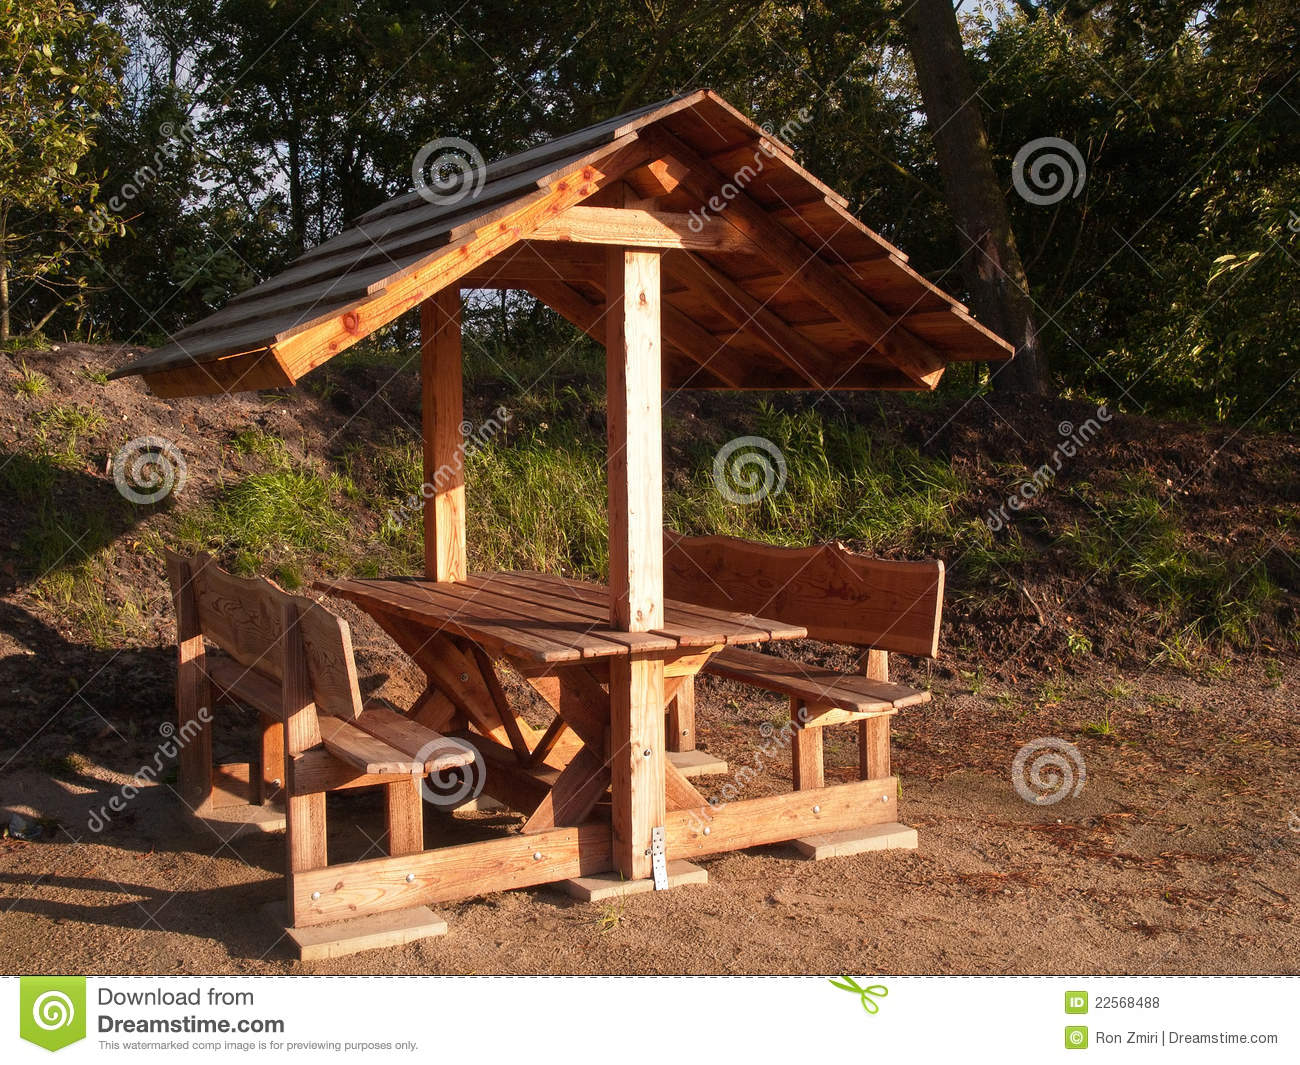 Permalink to simple plans for building a picnic table